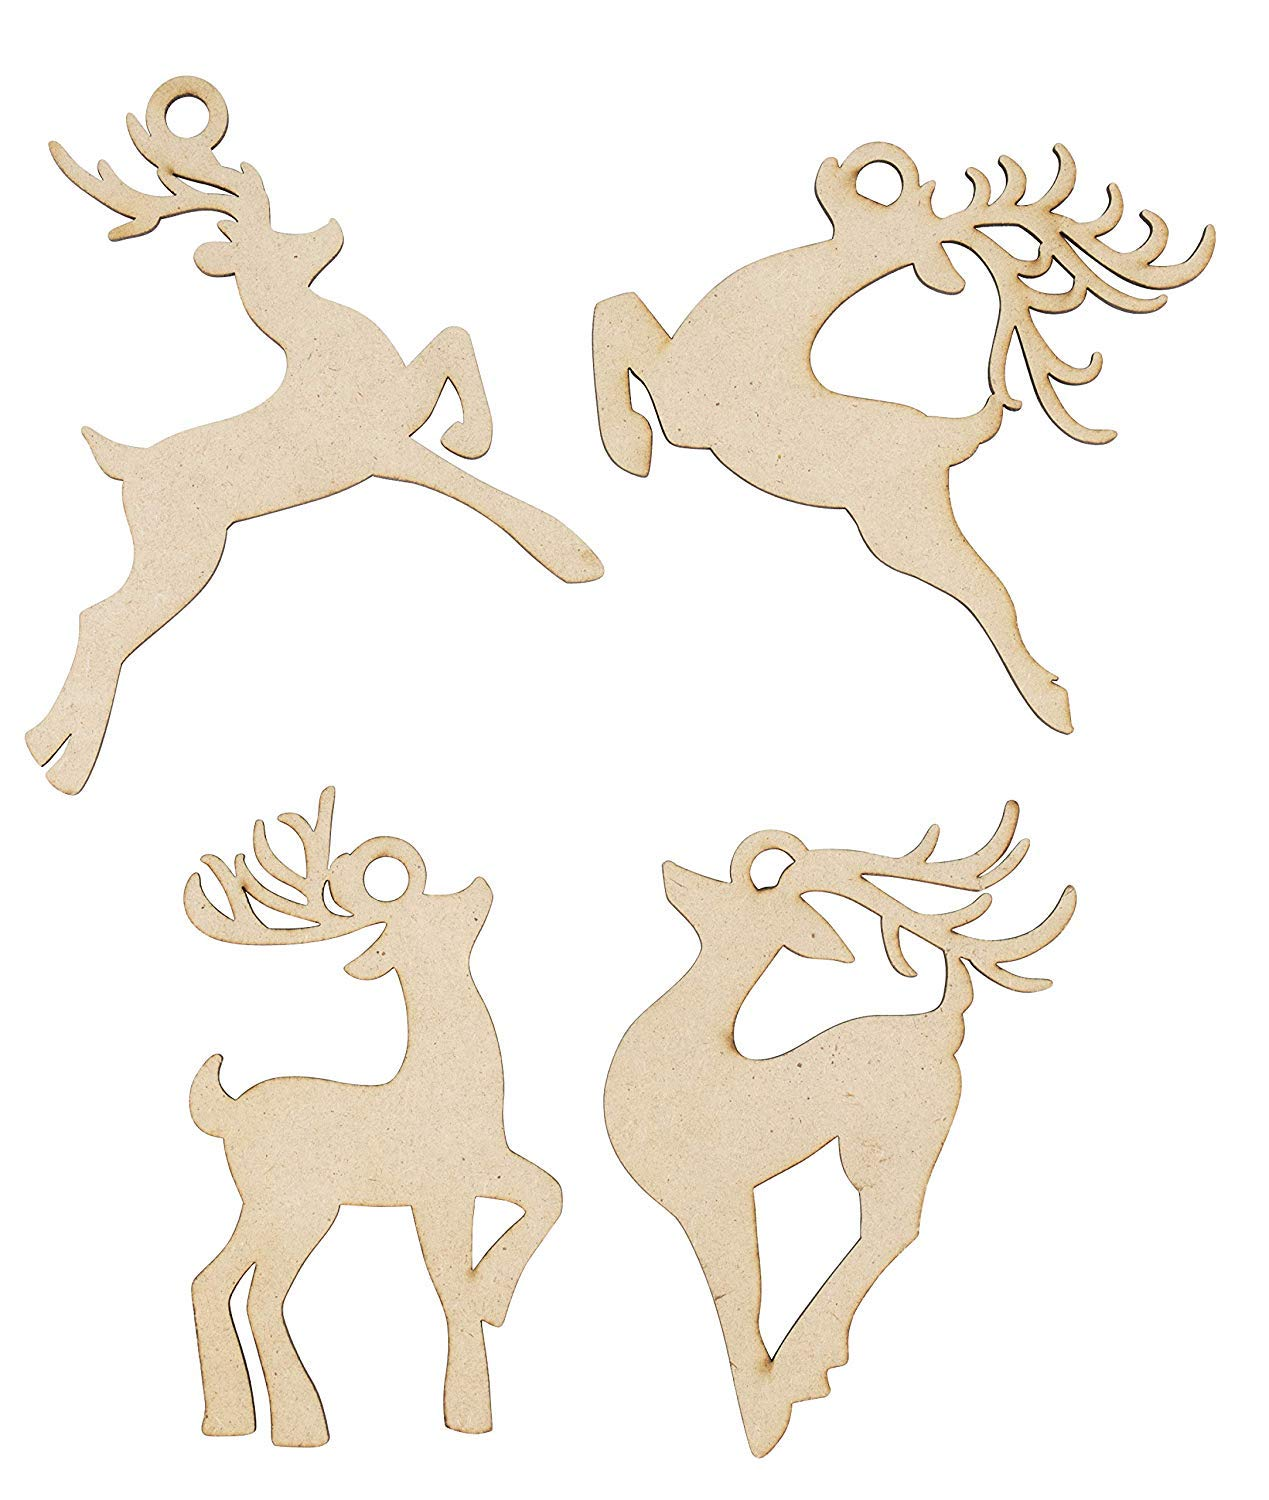 Festive Decoration Unfinished Wooden Christmas Ornaments 24-Pack Paintable Blank Xmas Tree Hanging Wood Slices for Kids DIY Art Crafts 4 Assorted Snowflake Designs 3.9 x 4.5 x 0.1 Inches